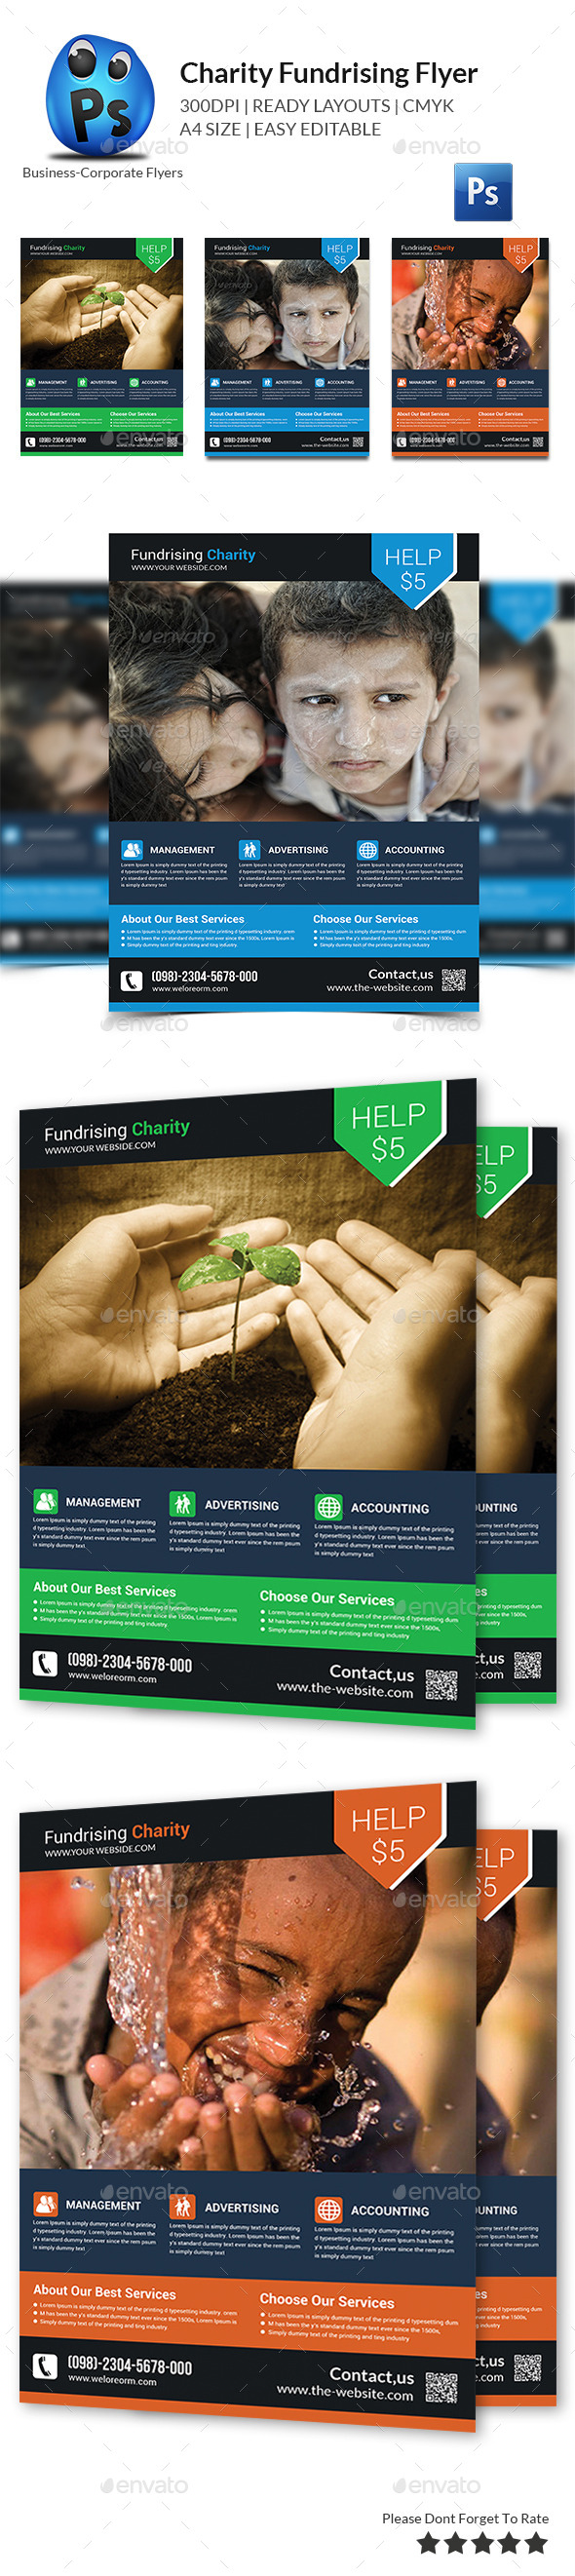 fundraising flyer templates